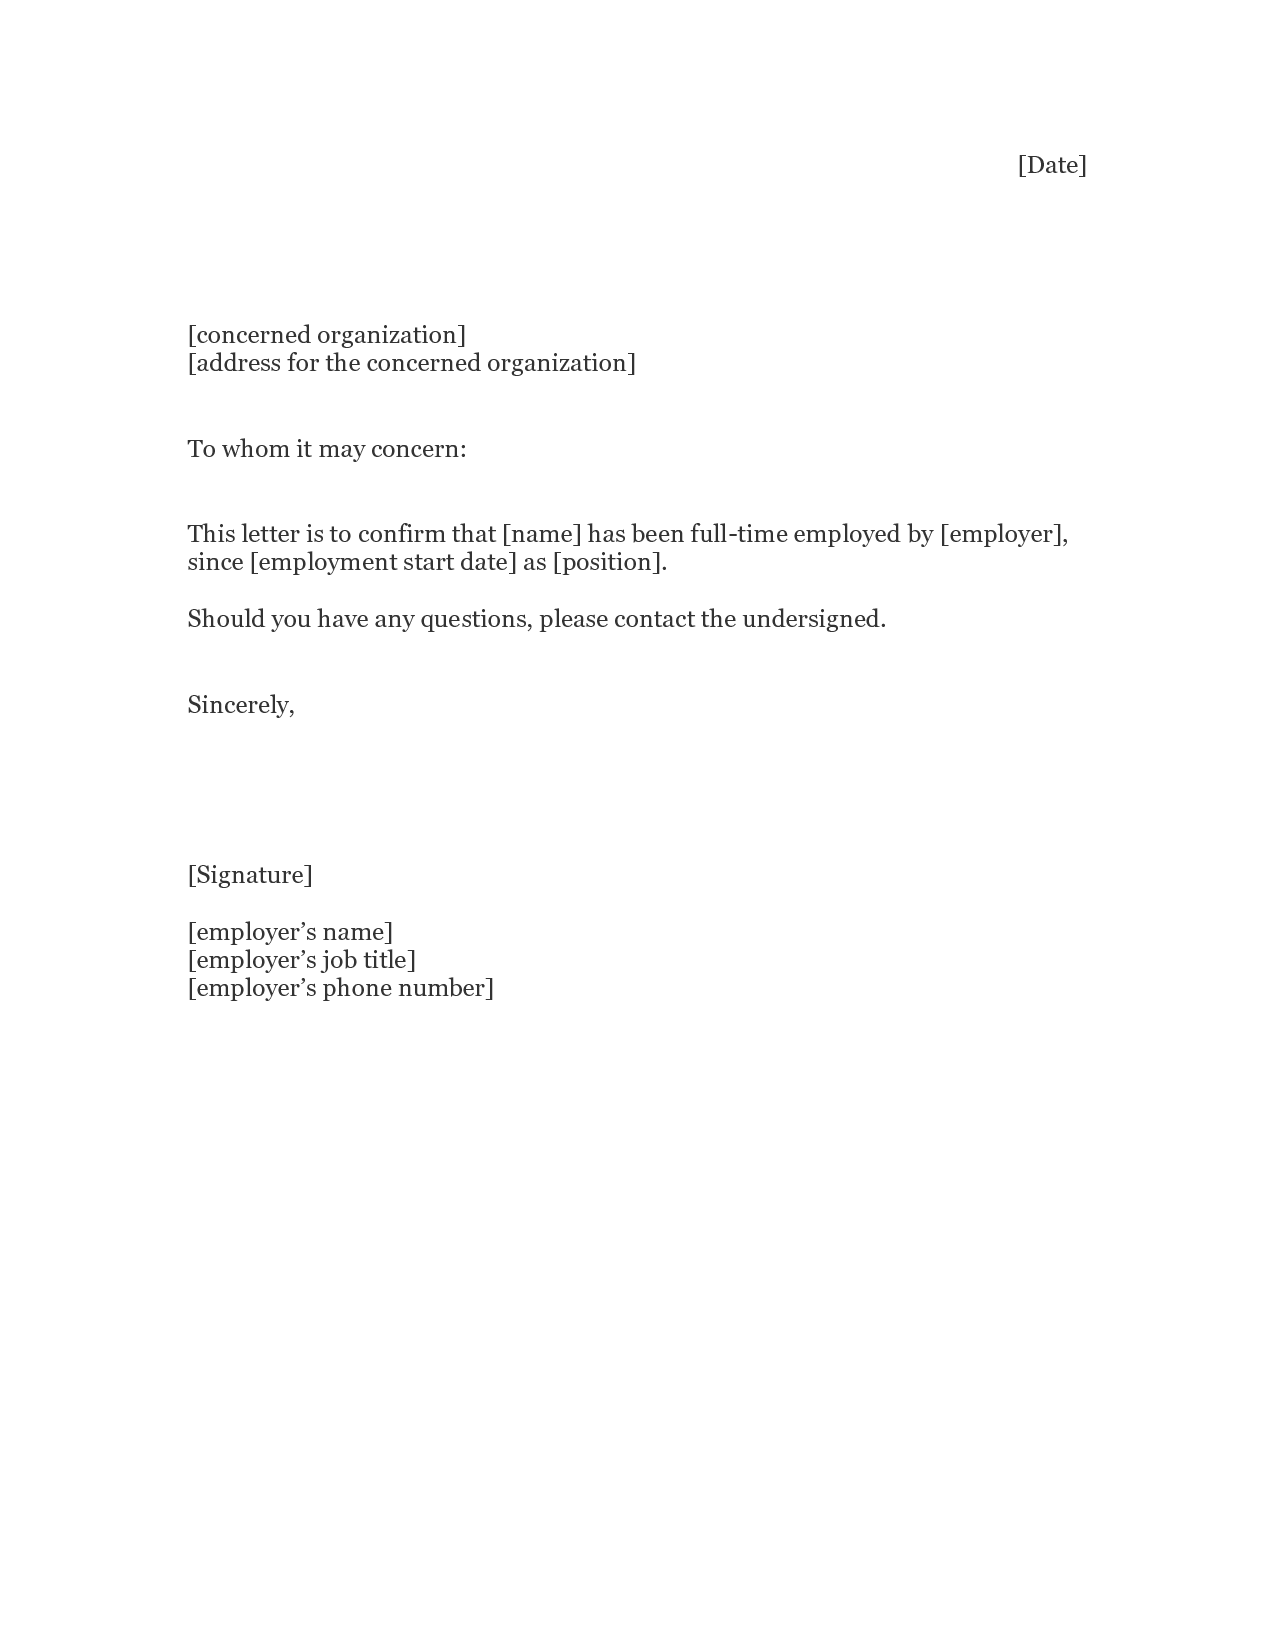 Letter Format Job Offer Sample Real Estate Offer Letter Letter ...